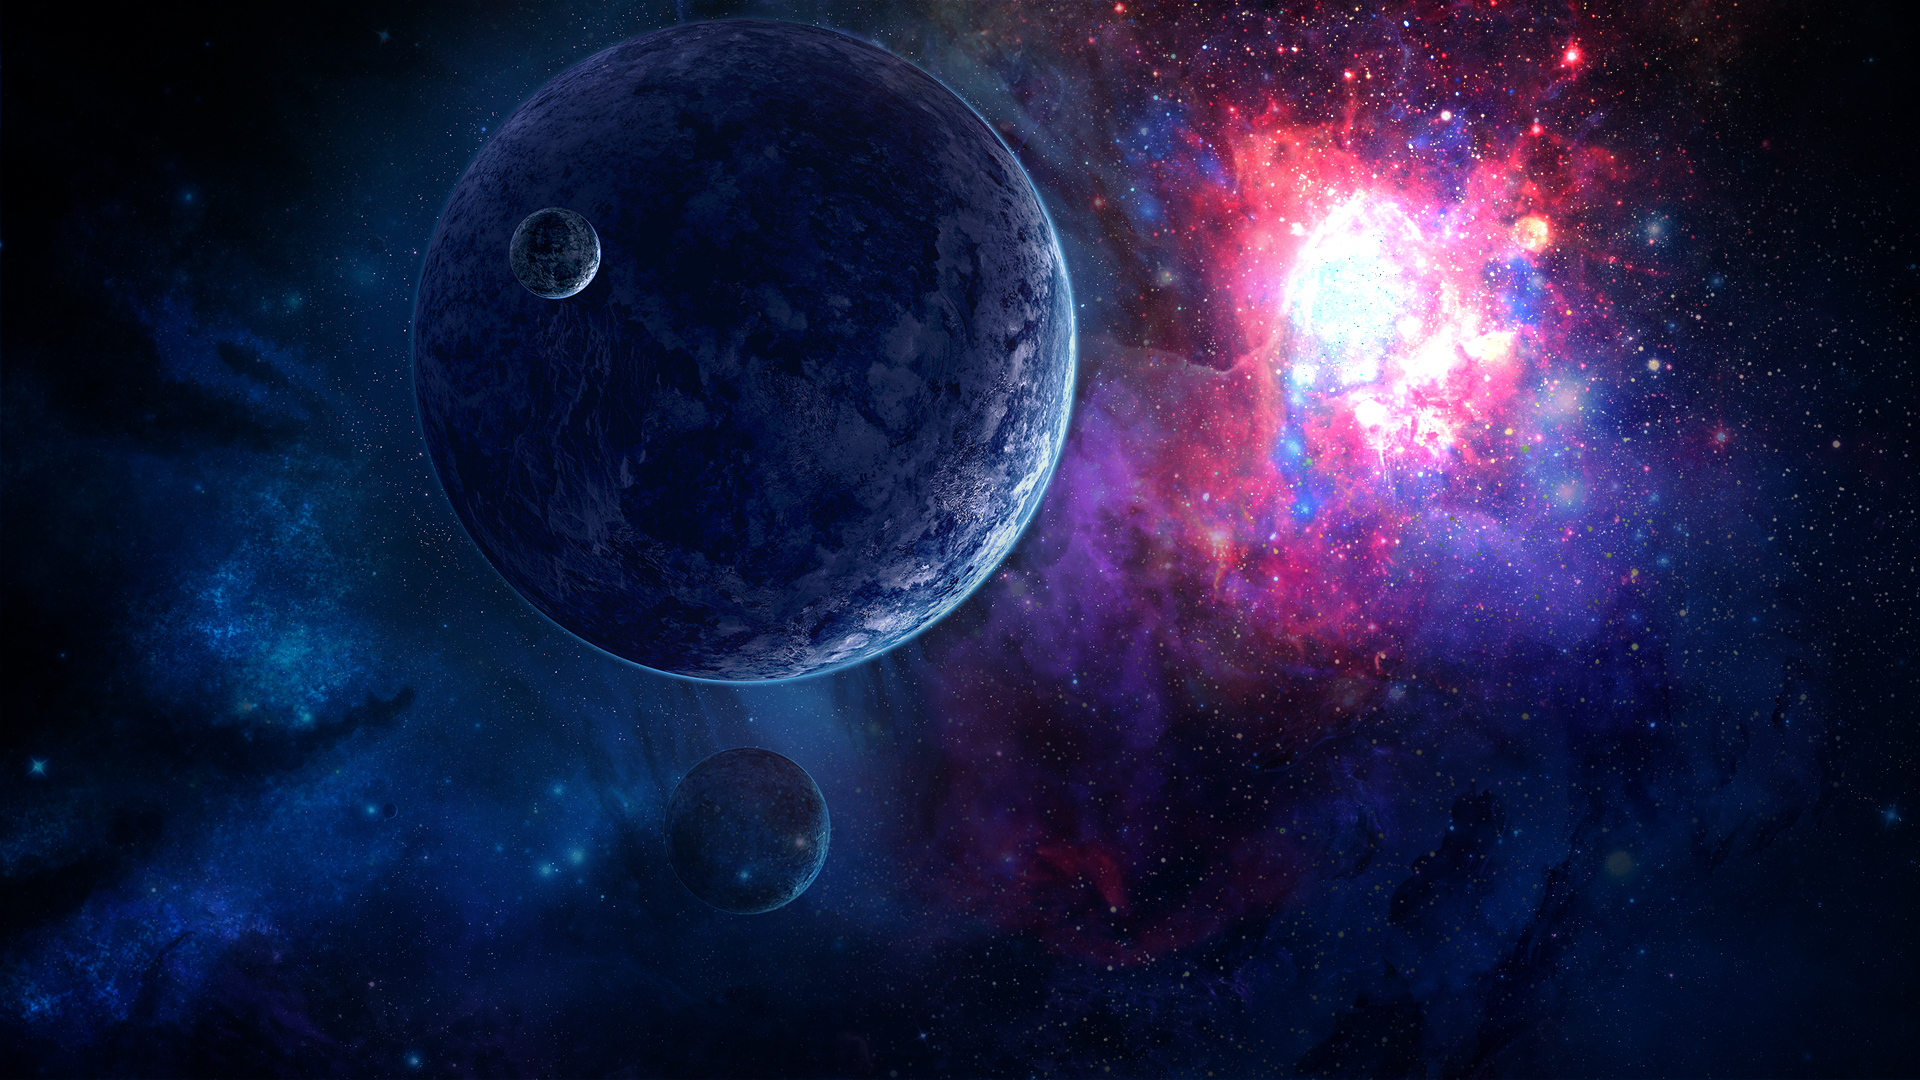 Space wallpaper 1920x1080 without lower planet by danielbemelen on ... Blue Space Wallpaper 1920x1080